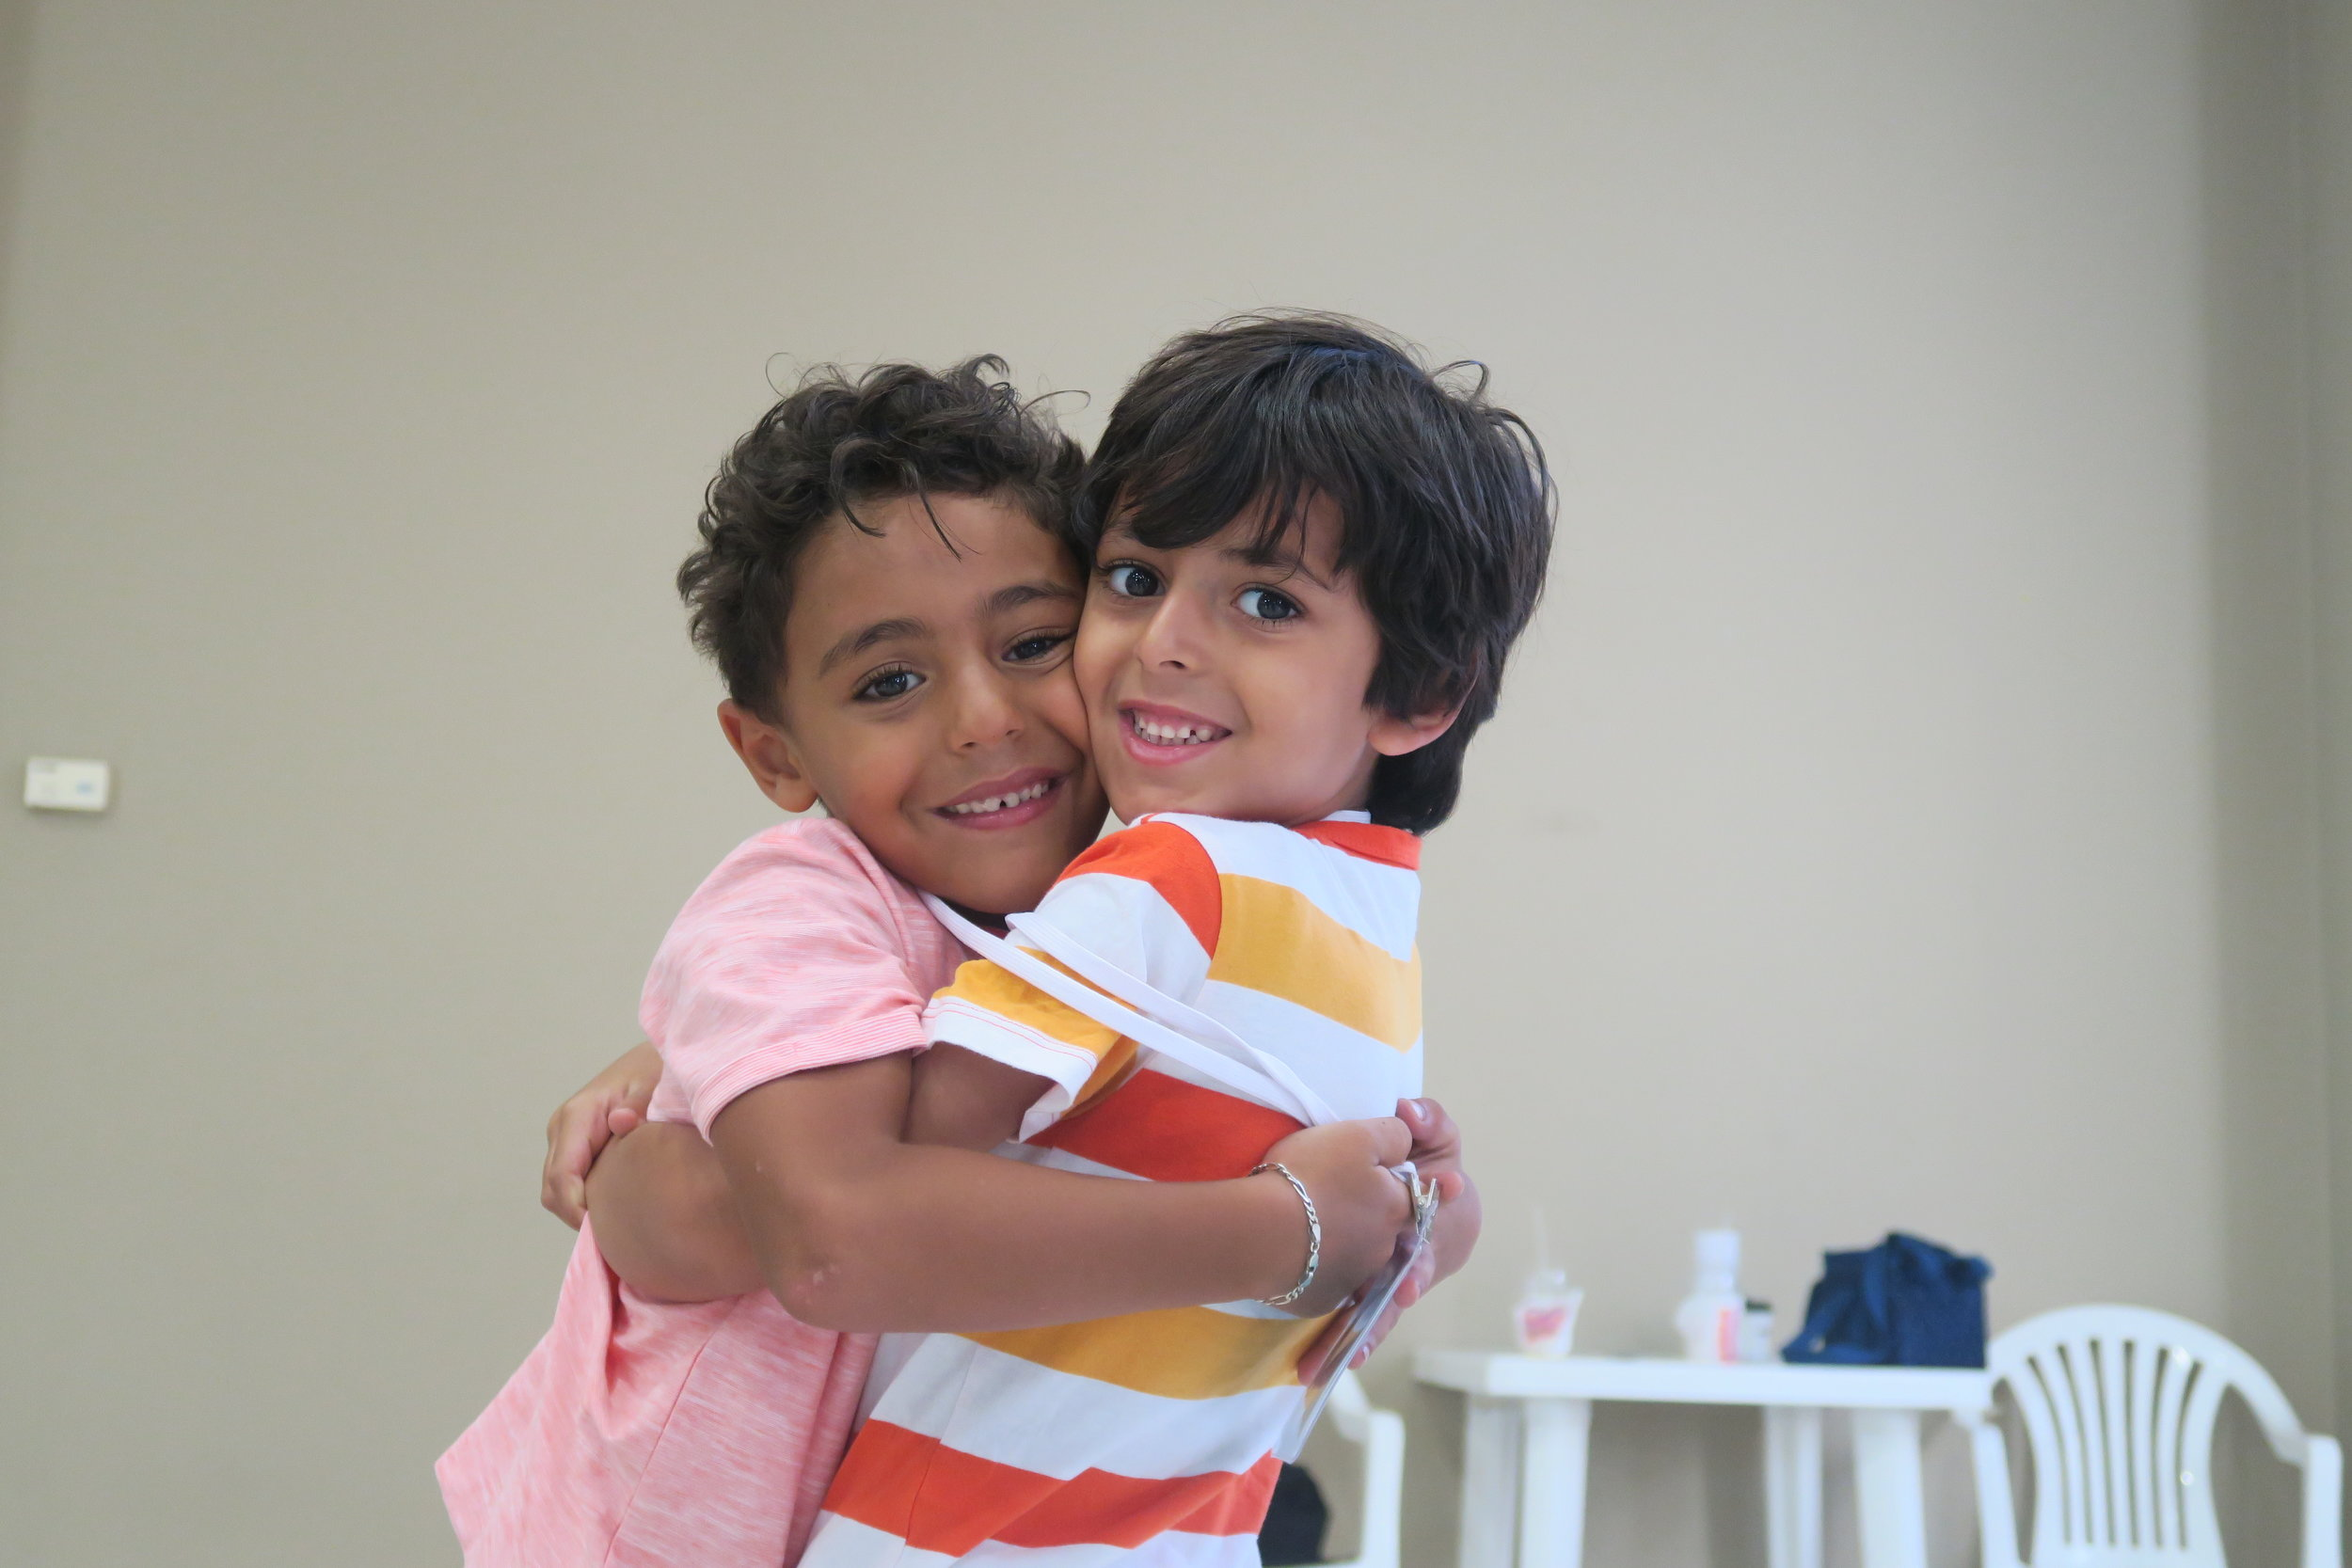 Mohammed and Haidar hugging!